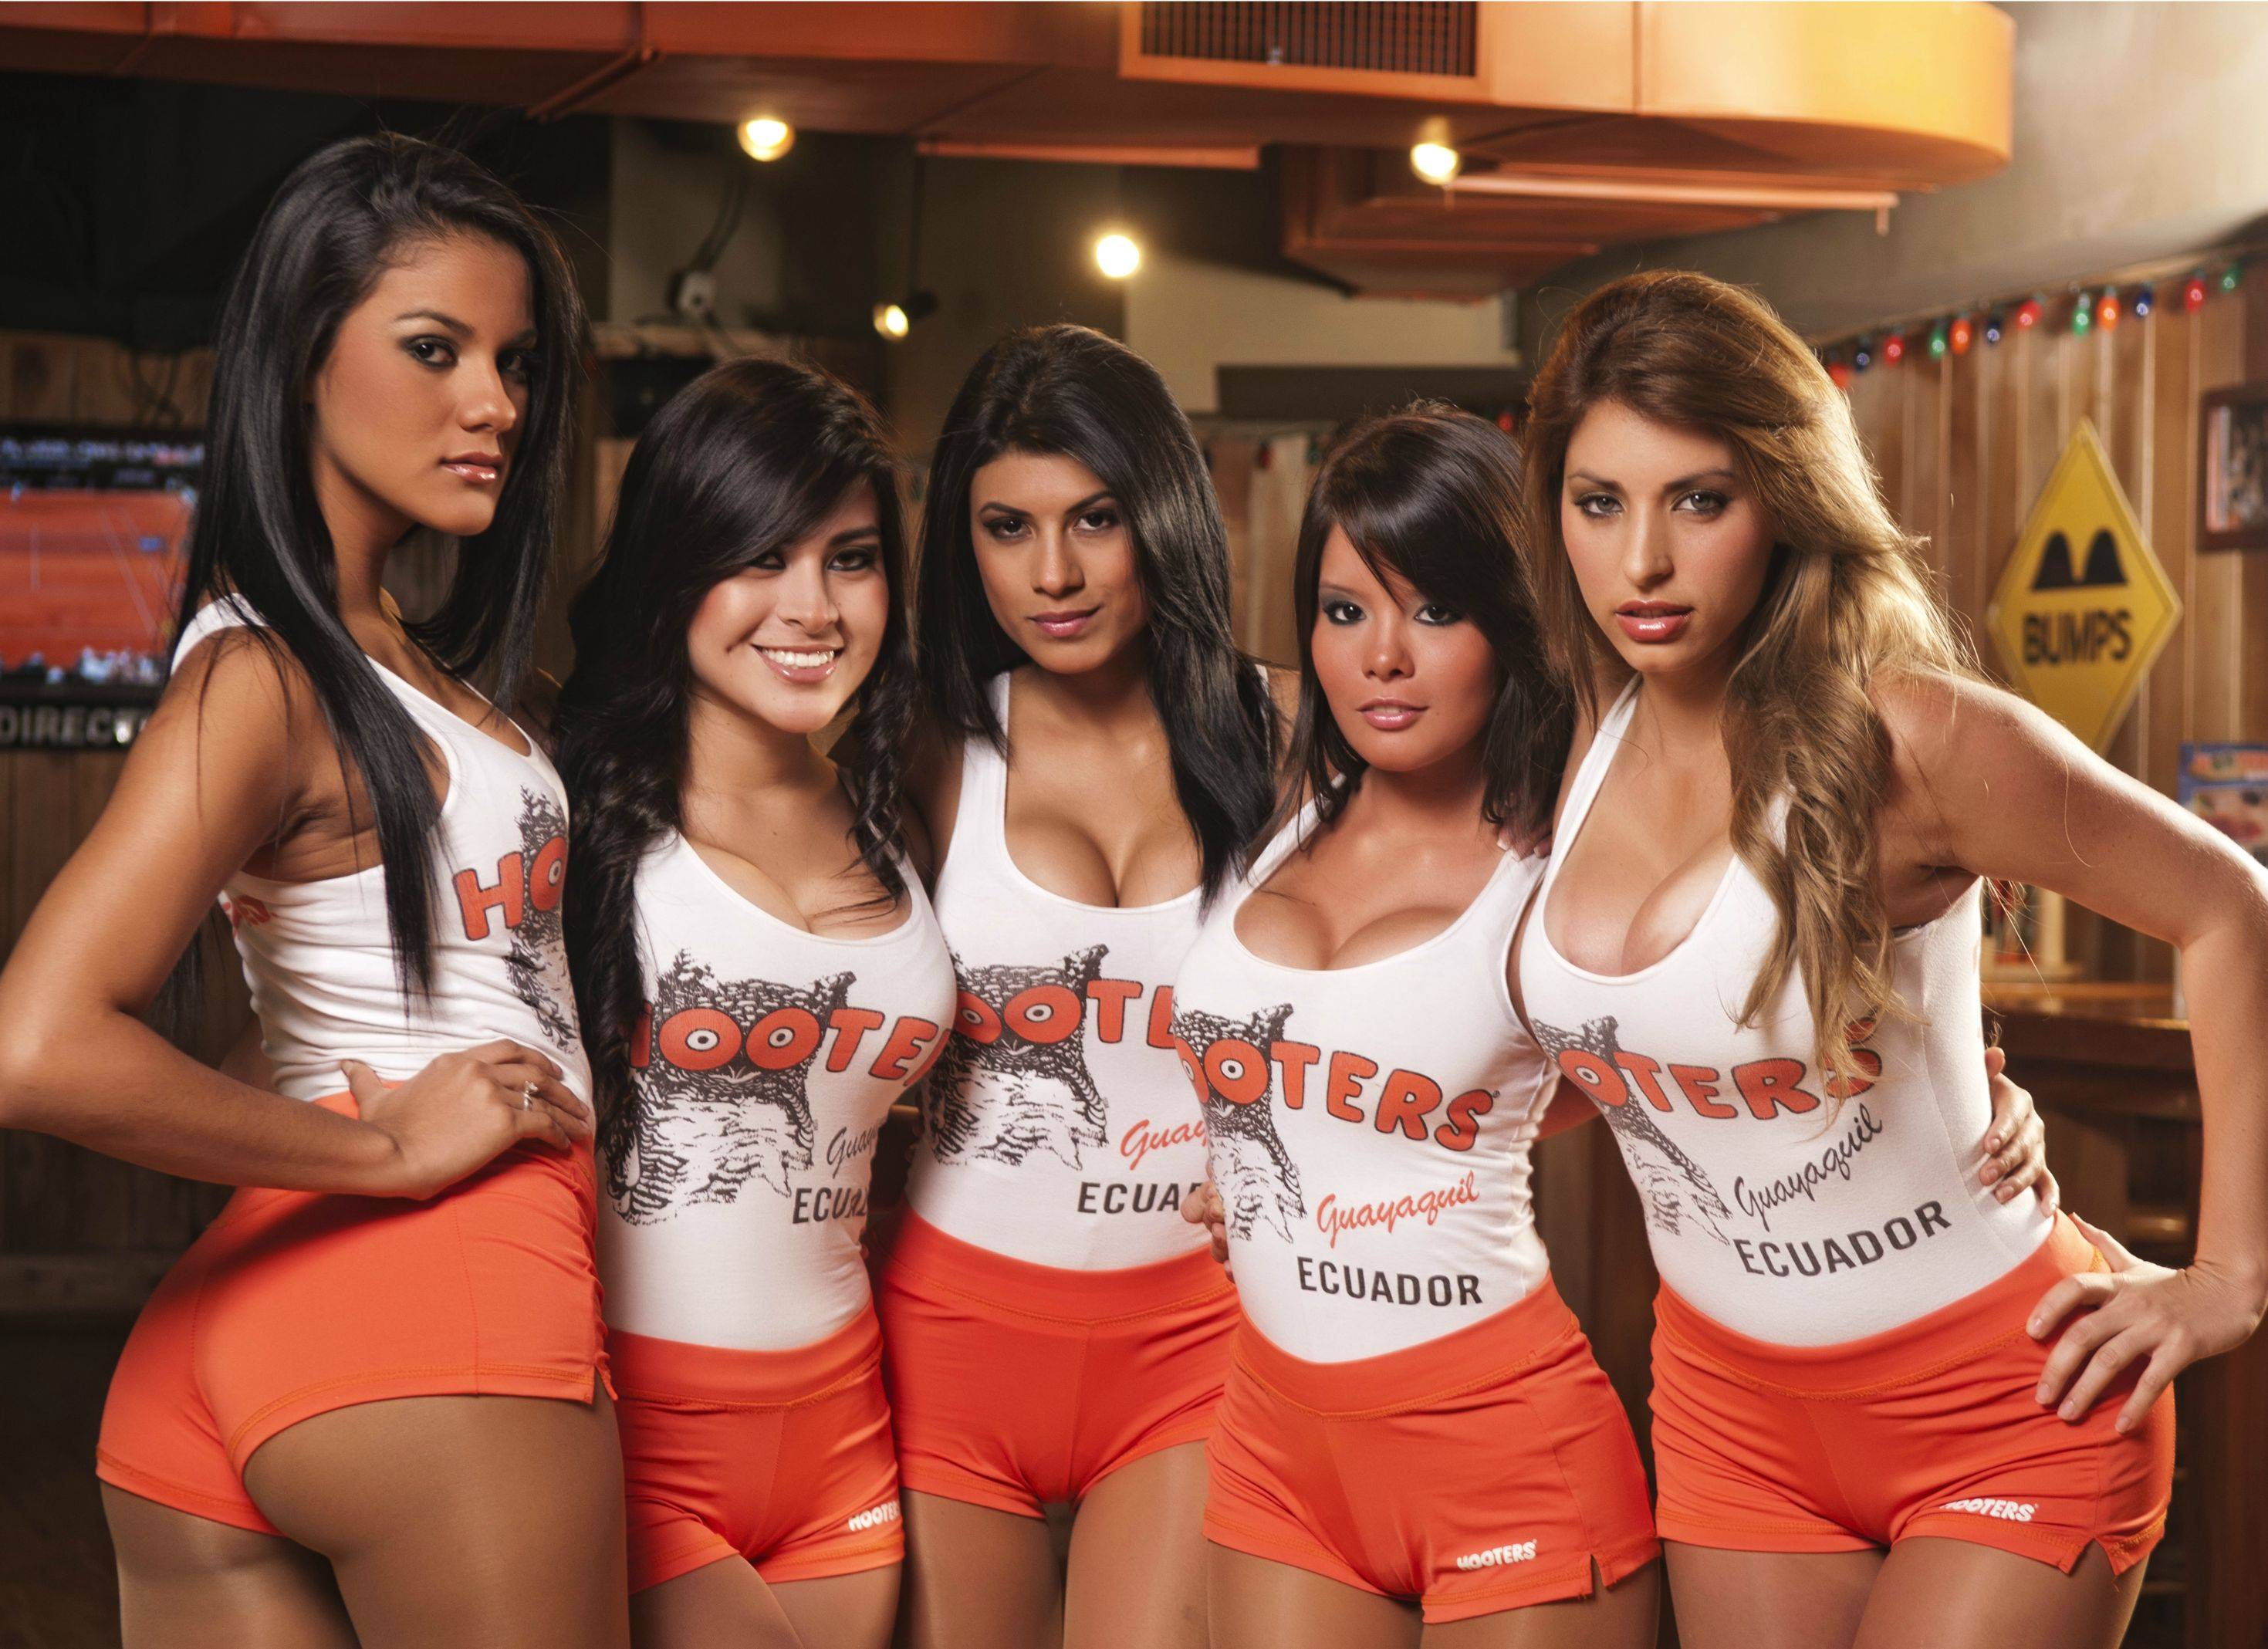 New York City School District Calendar 2017 And 2018 Do The Girls Who Work At Hooters Have No Shame Pics